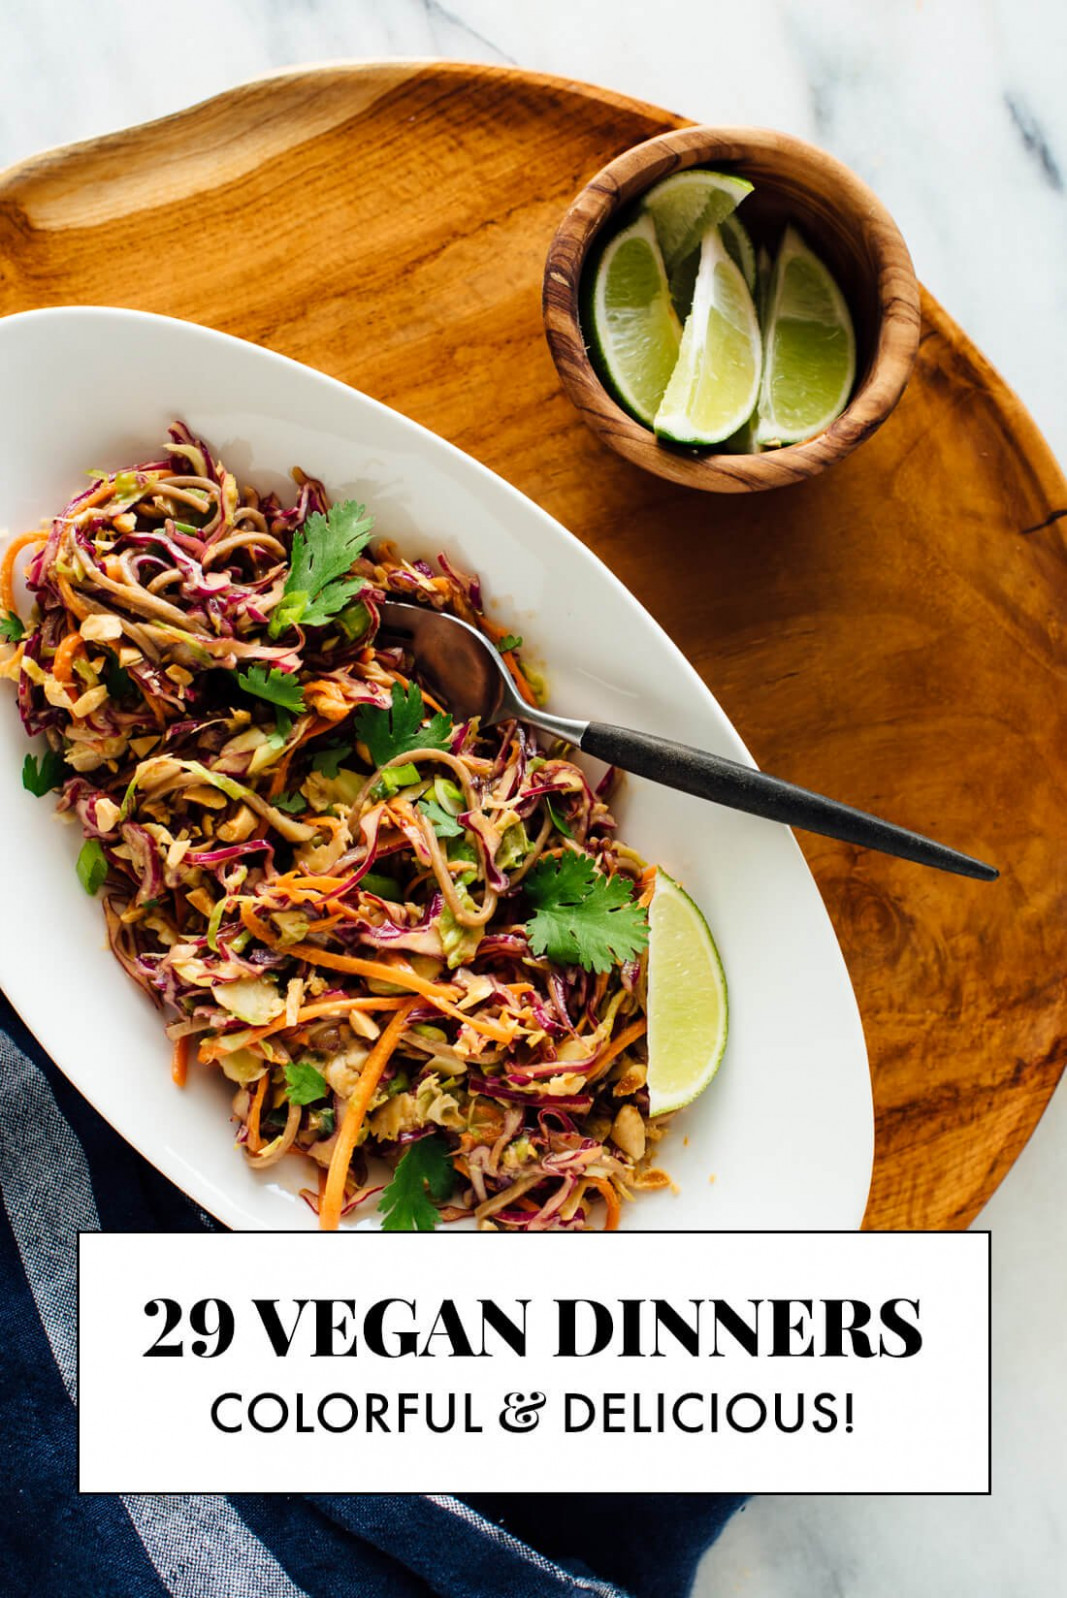 10 Delicious Vegan Dinner Recipes - Cookie and Kate - delicious vegetarian recipes